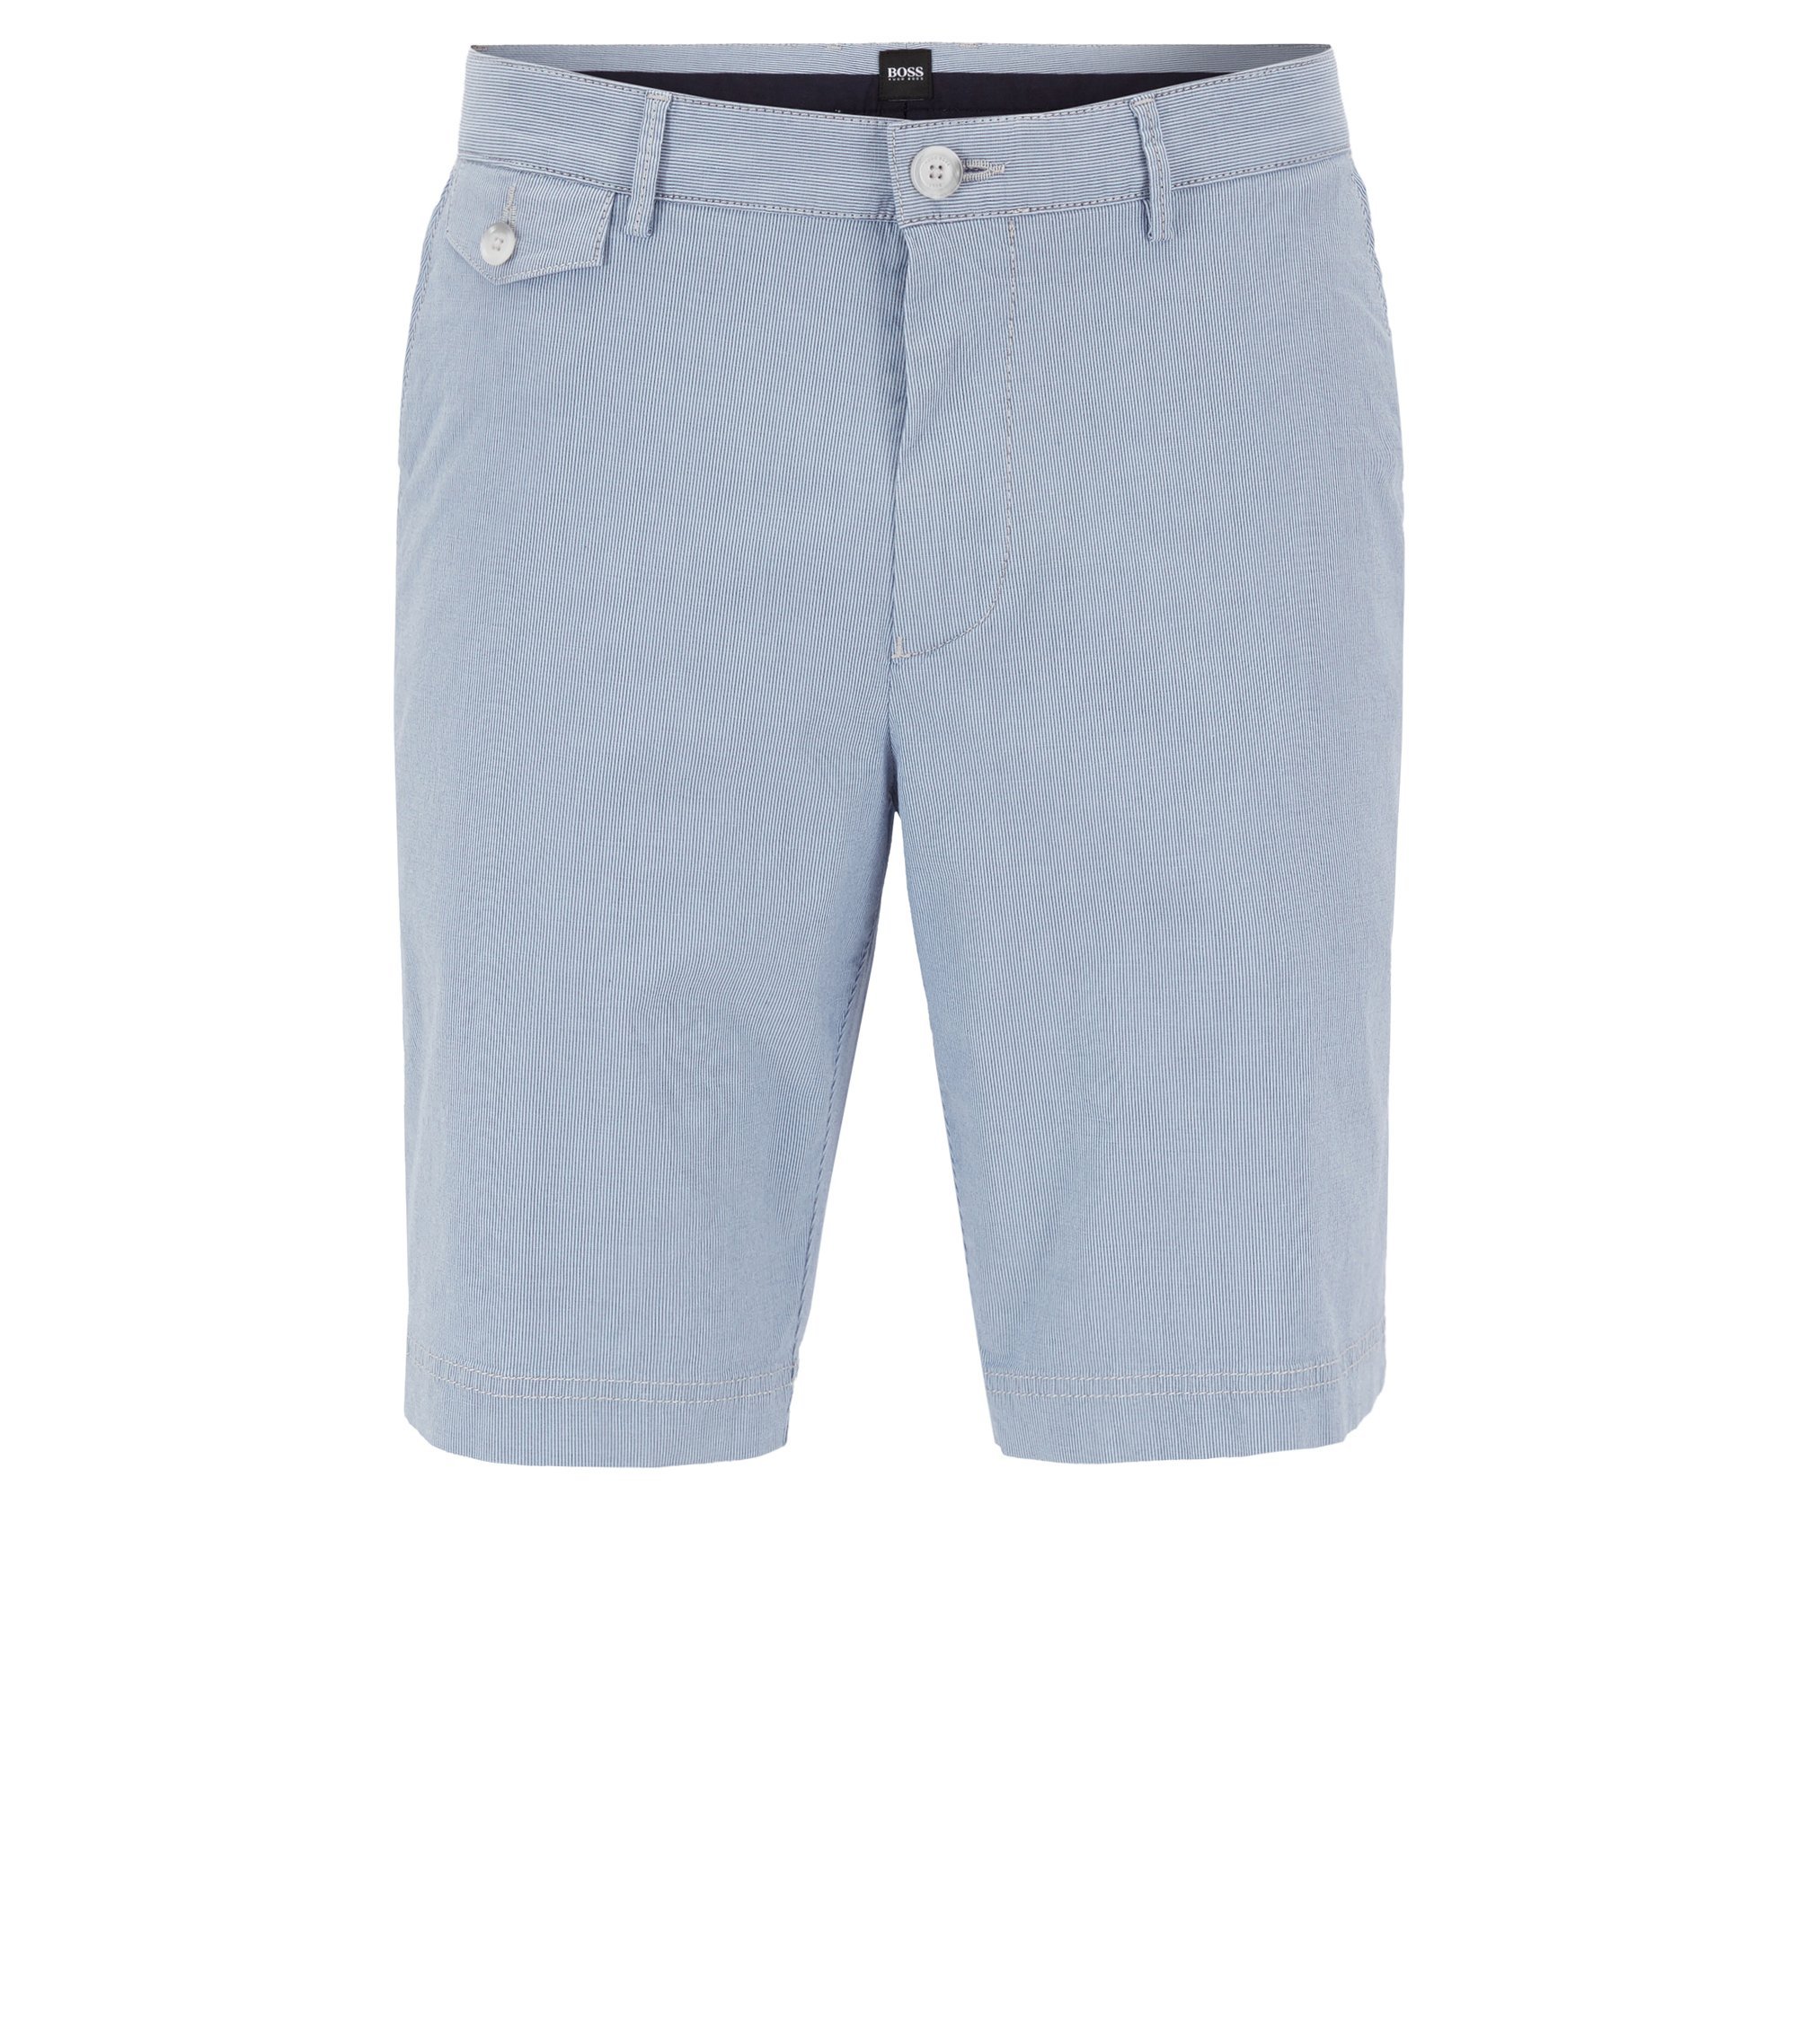 Short Regular Fit en coton stretch à rayures, Bleu foncé